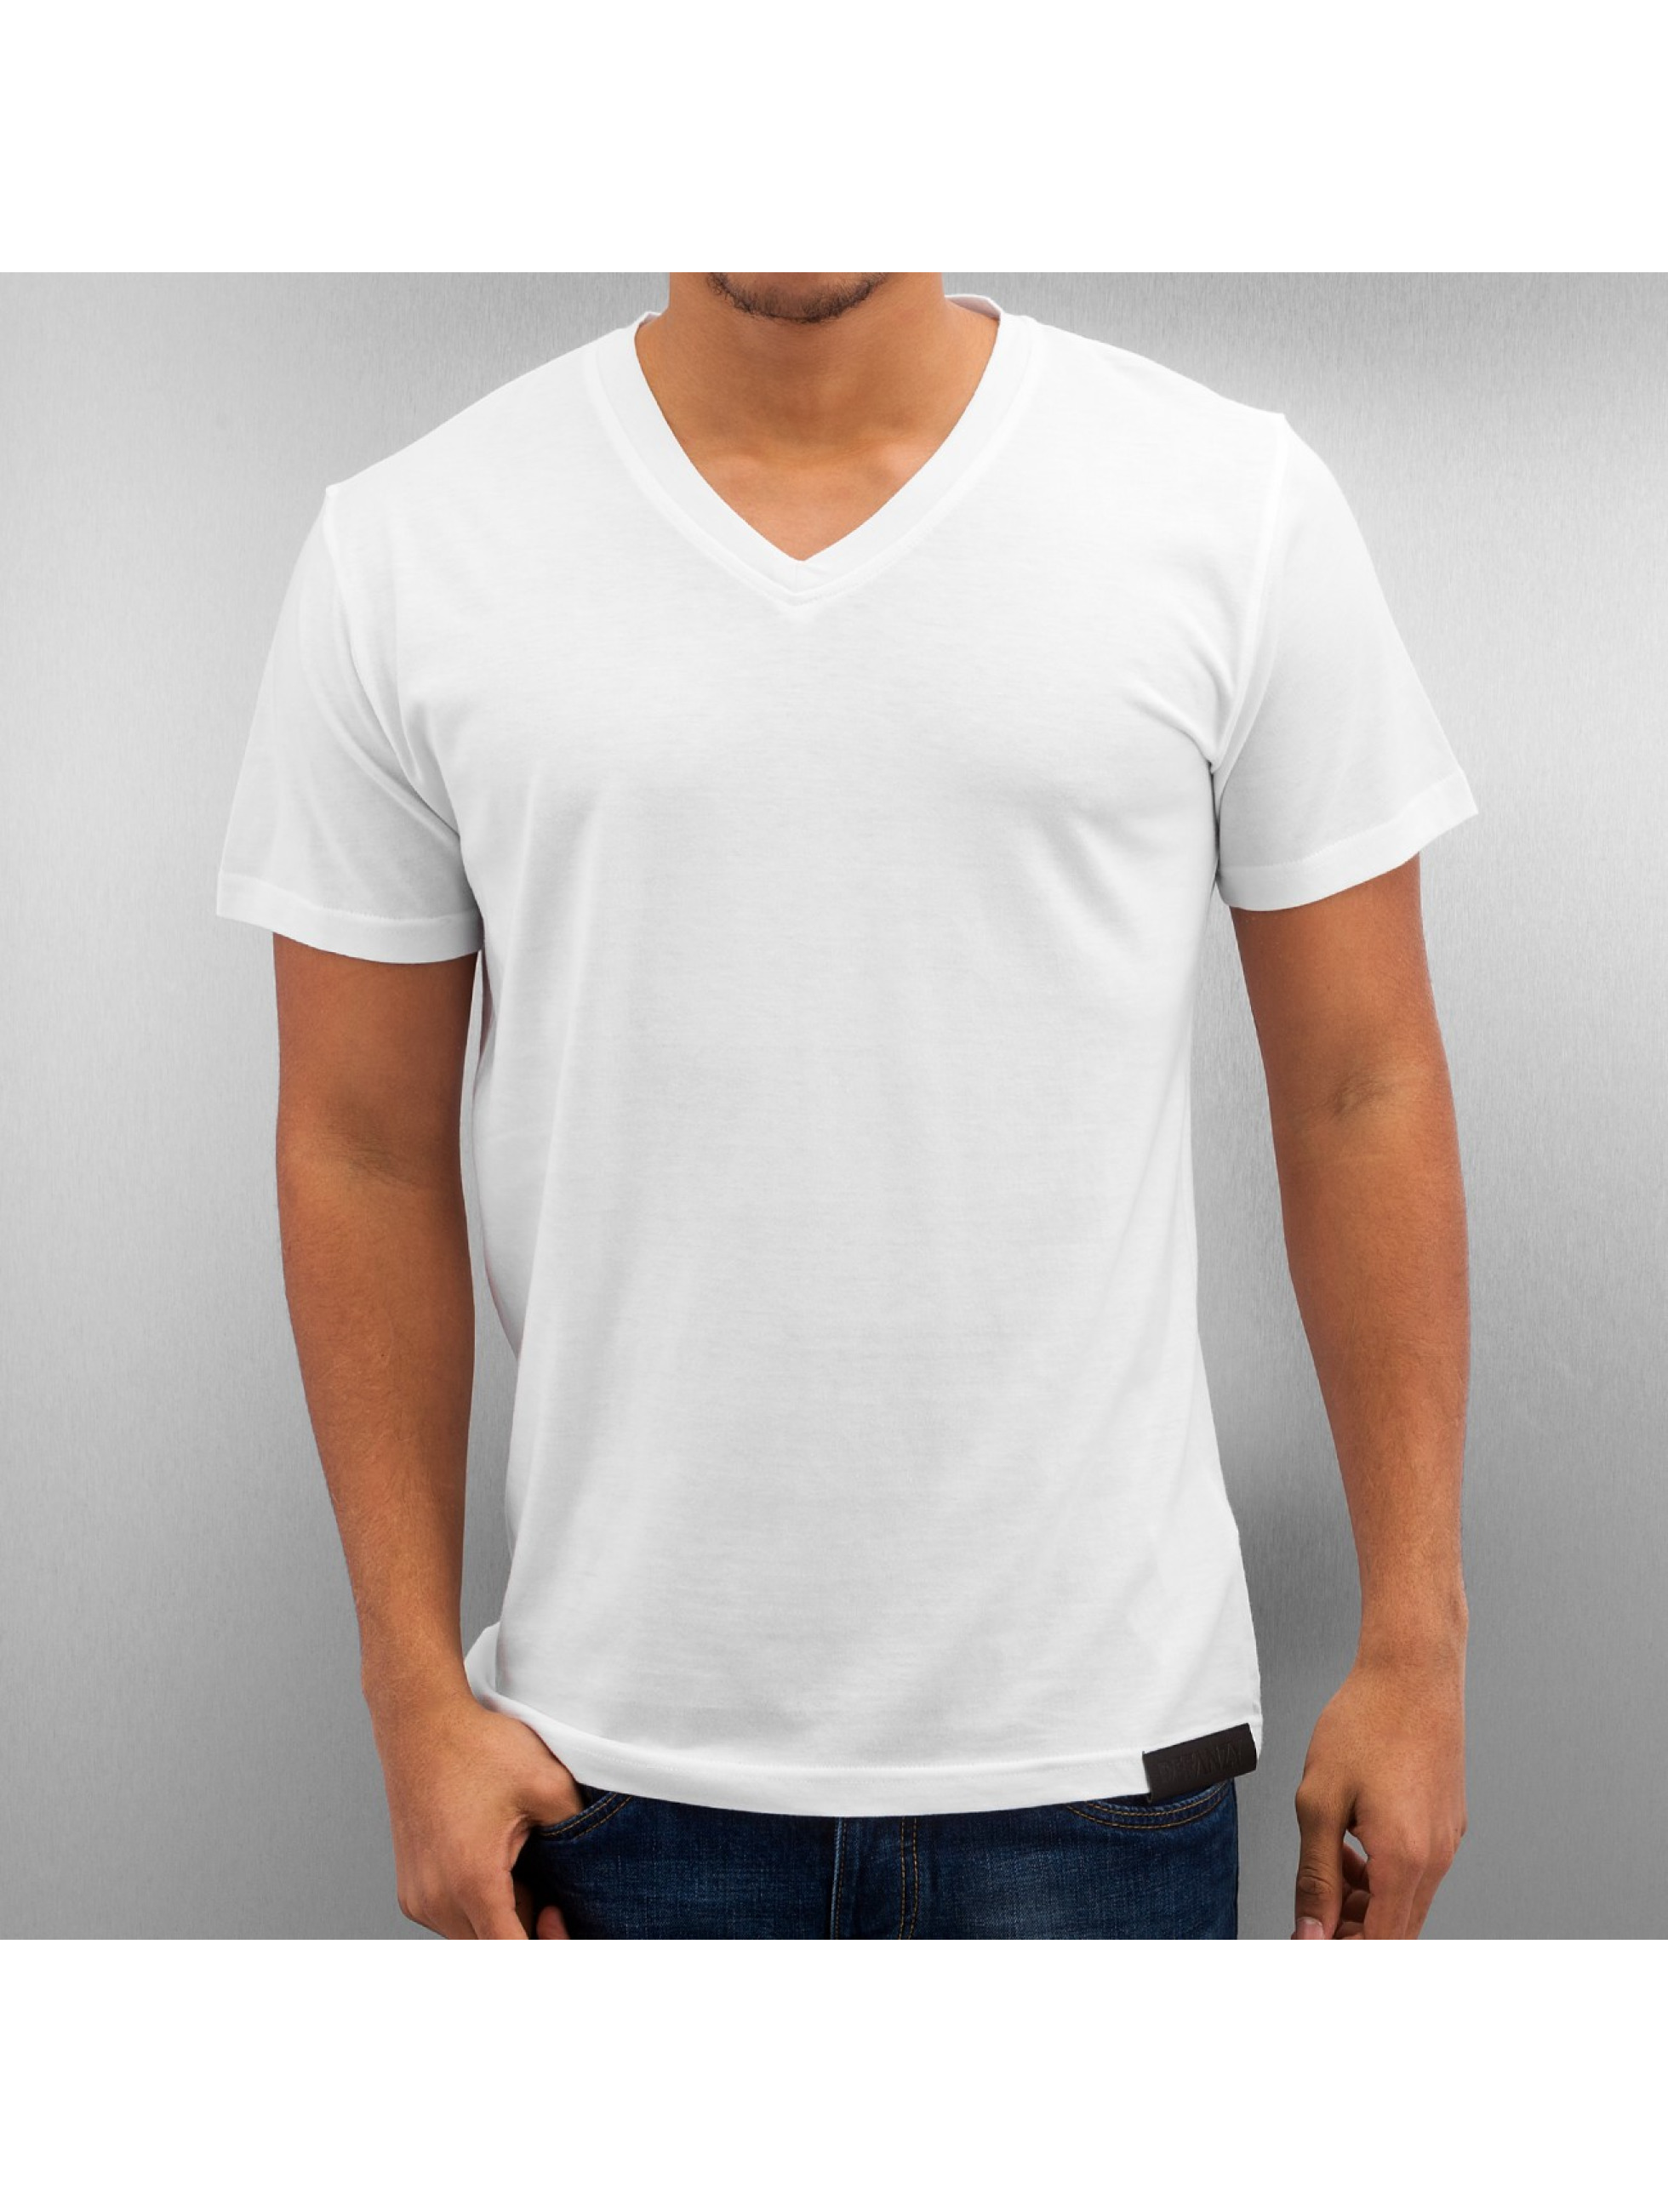 DefShop T-Shirt Basic V-Neck blanc